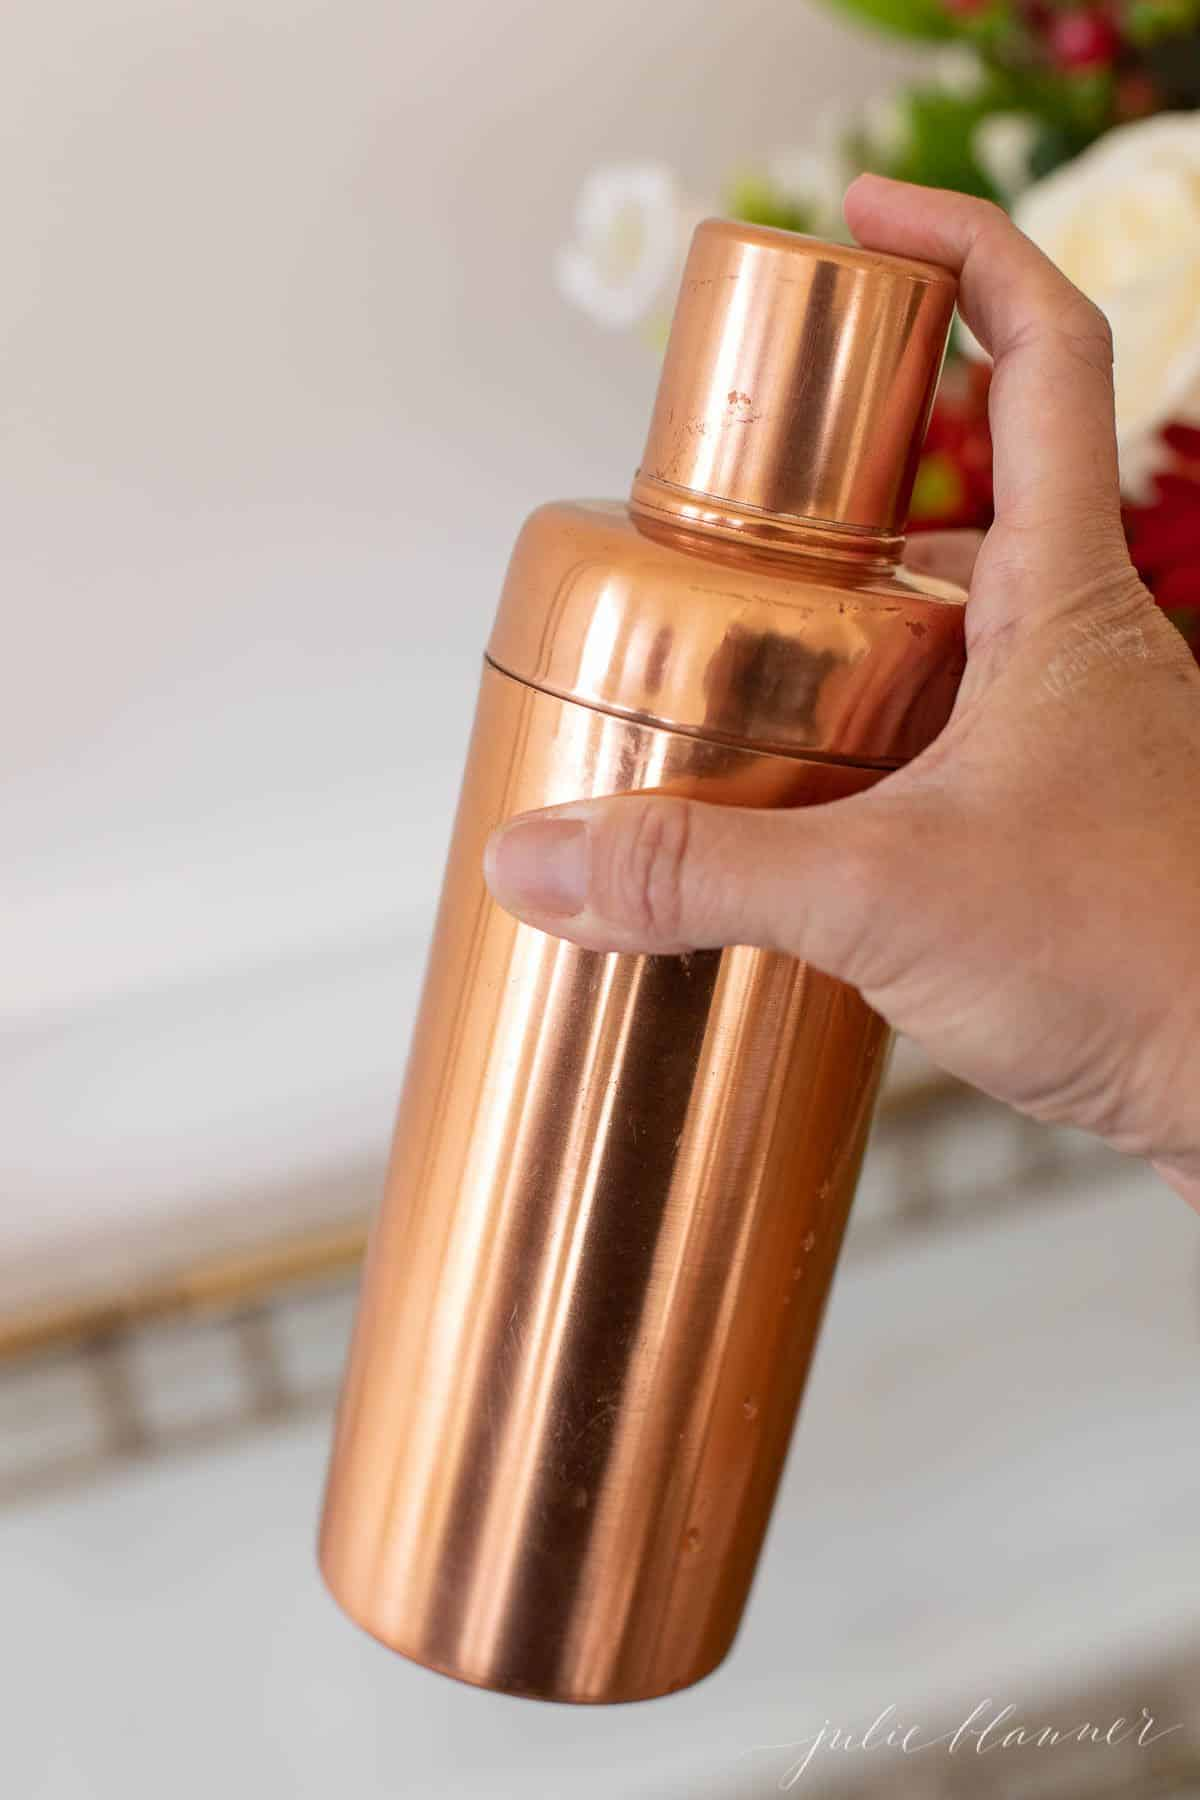 A hand holding a copper cocktail shaker.